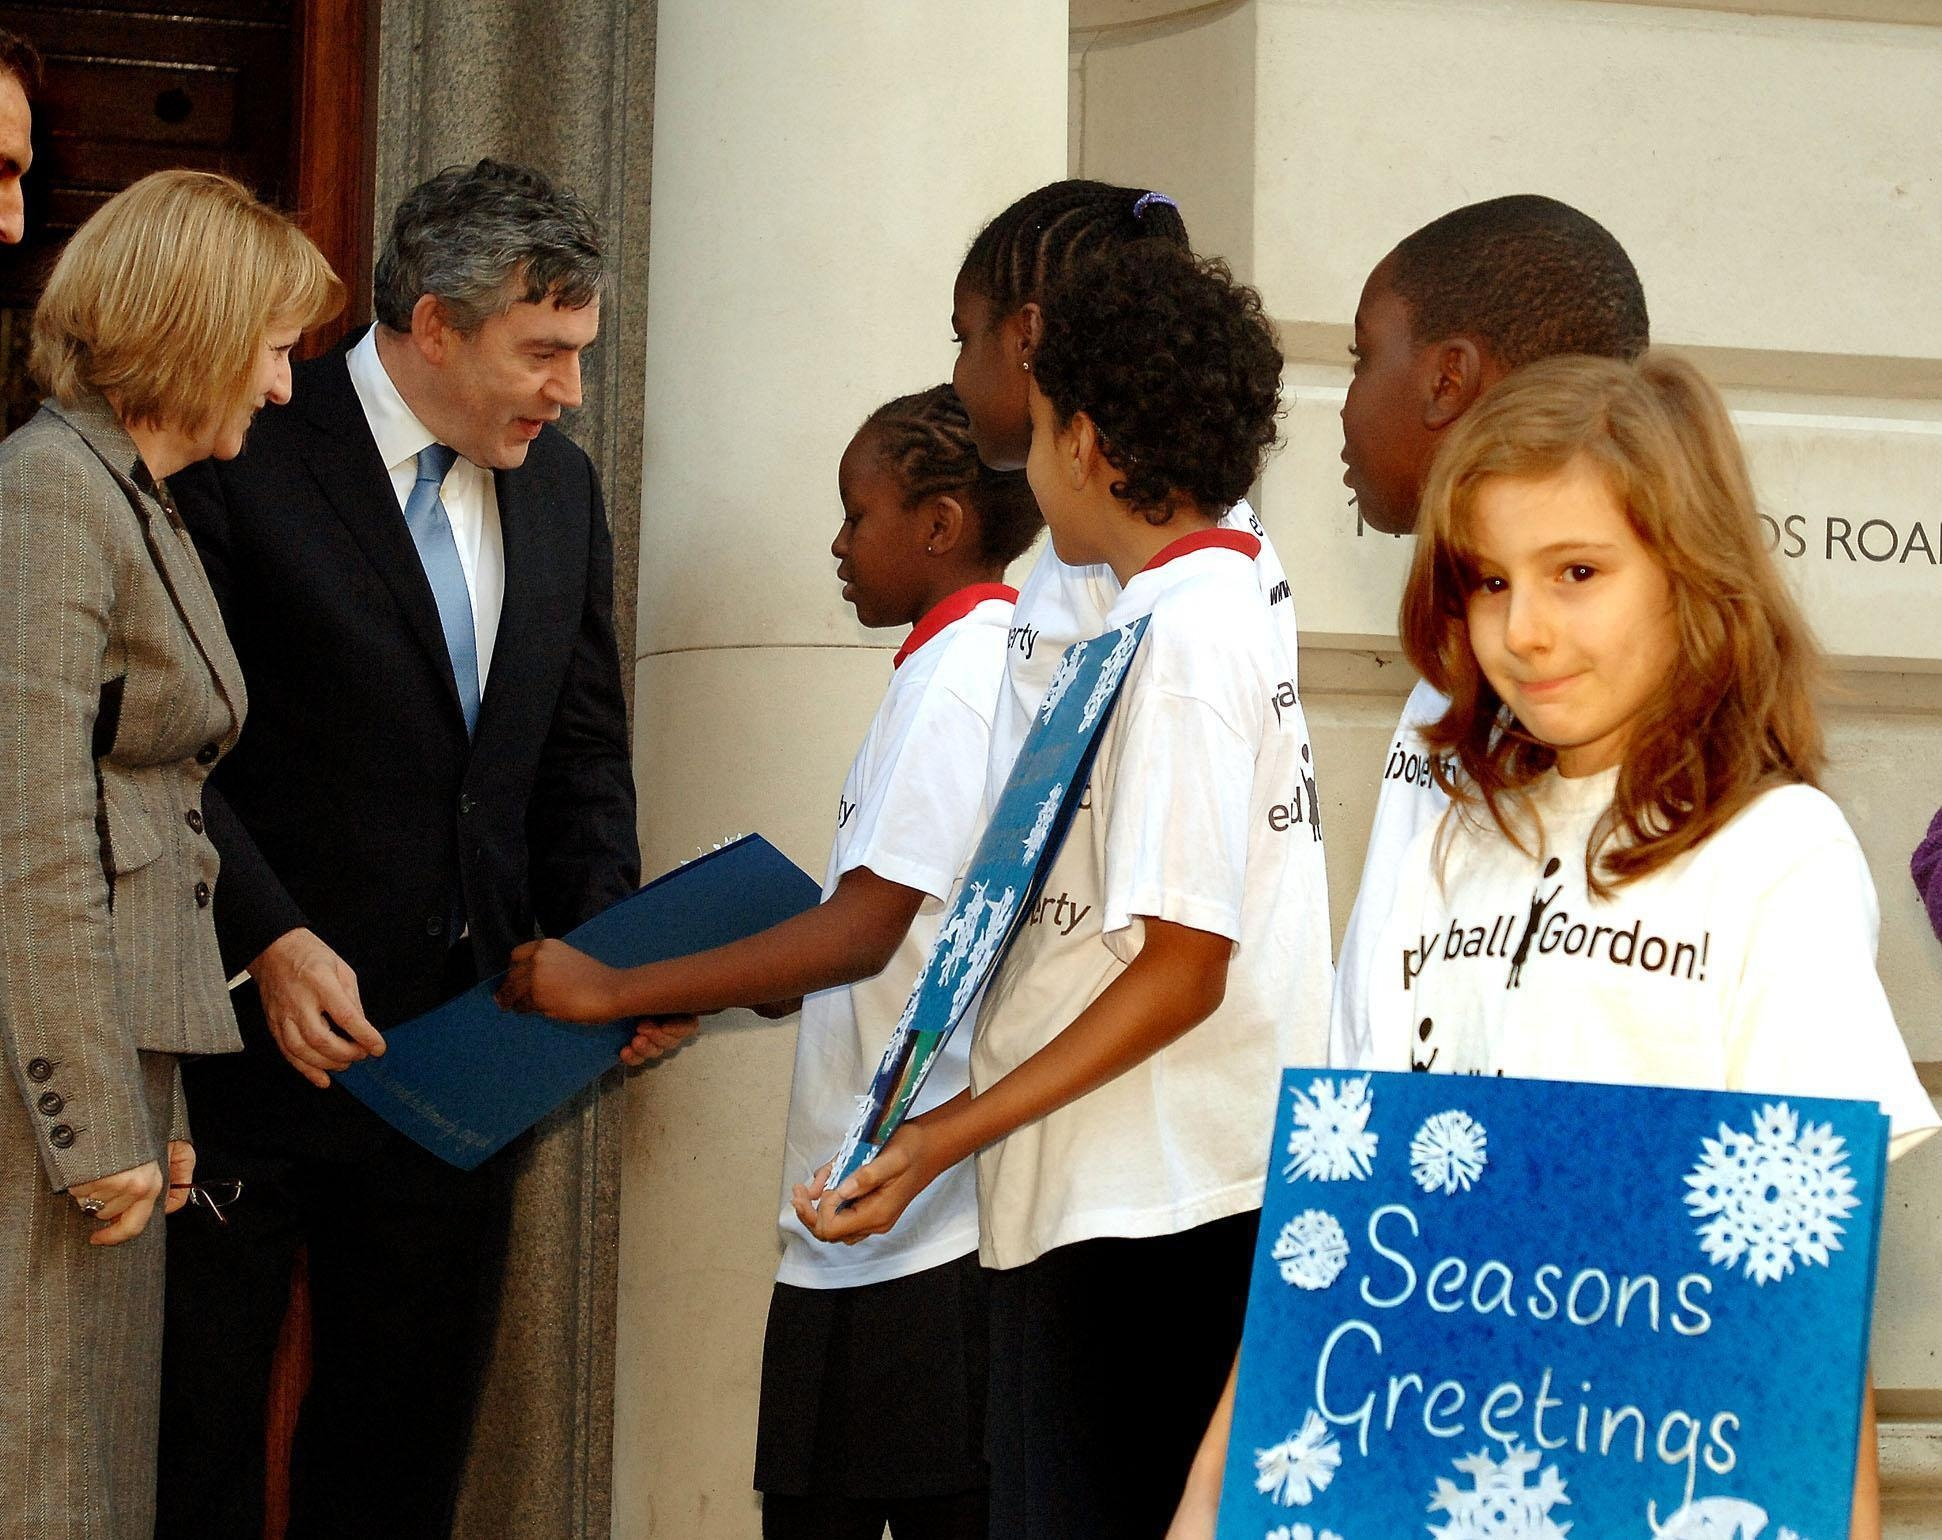 Bev and Gordon Brown talking to young people about the End Child Poverty Campaign